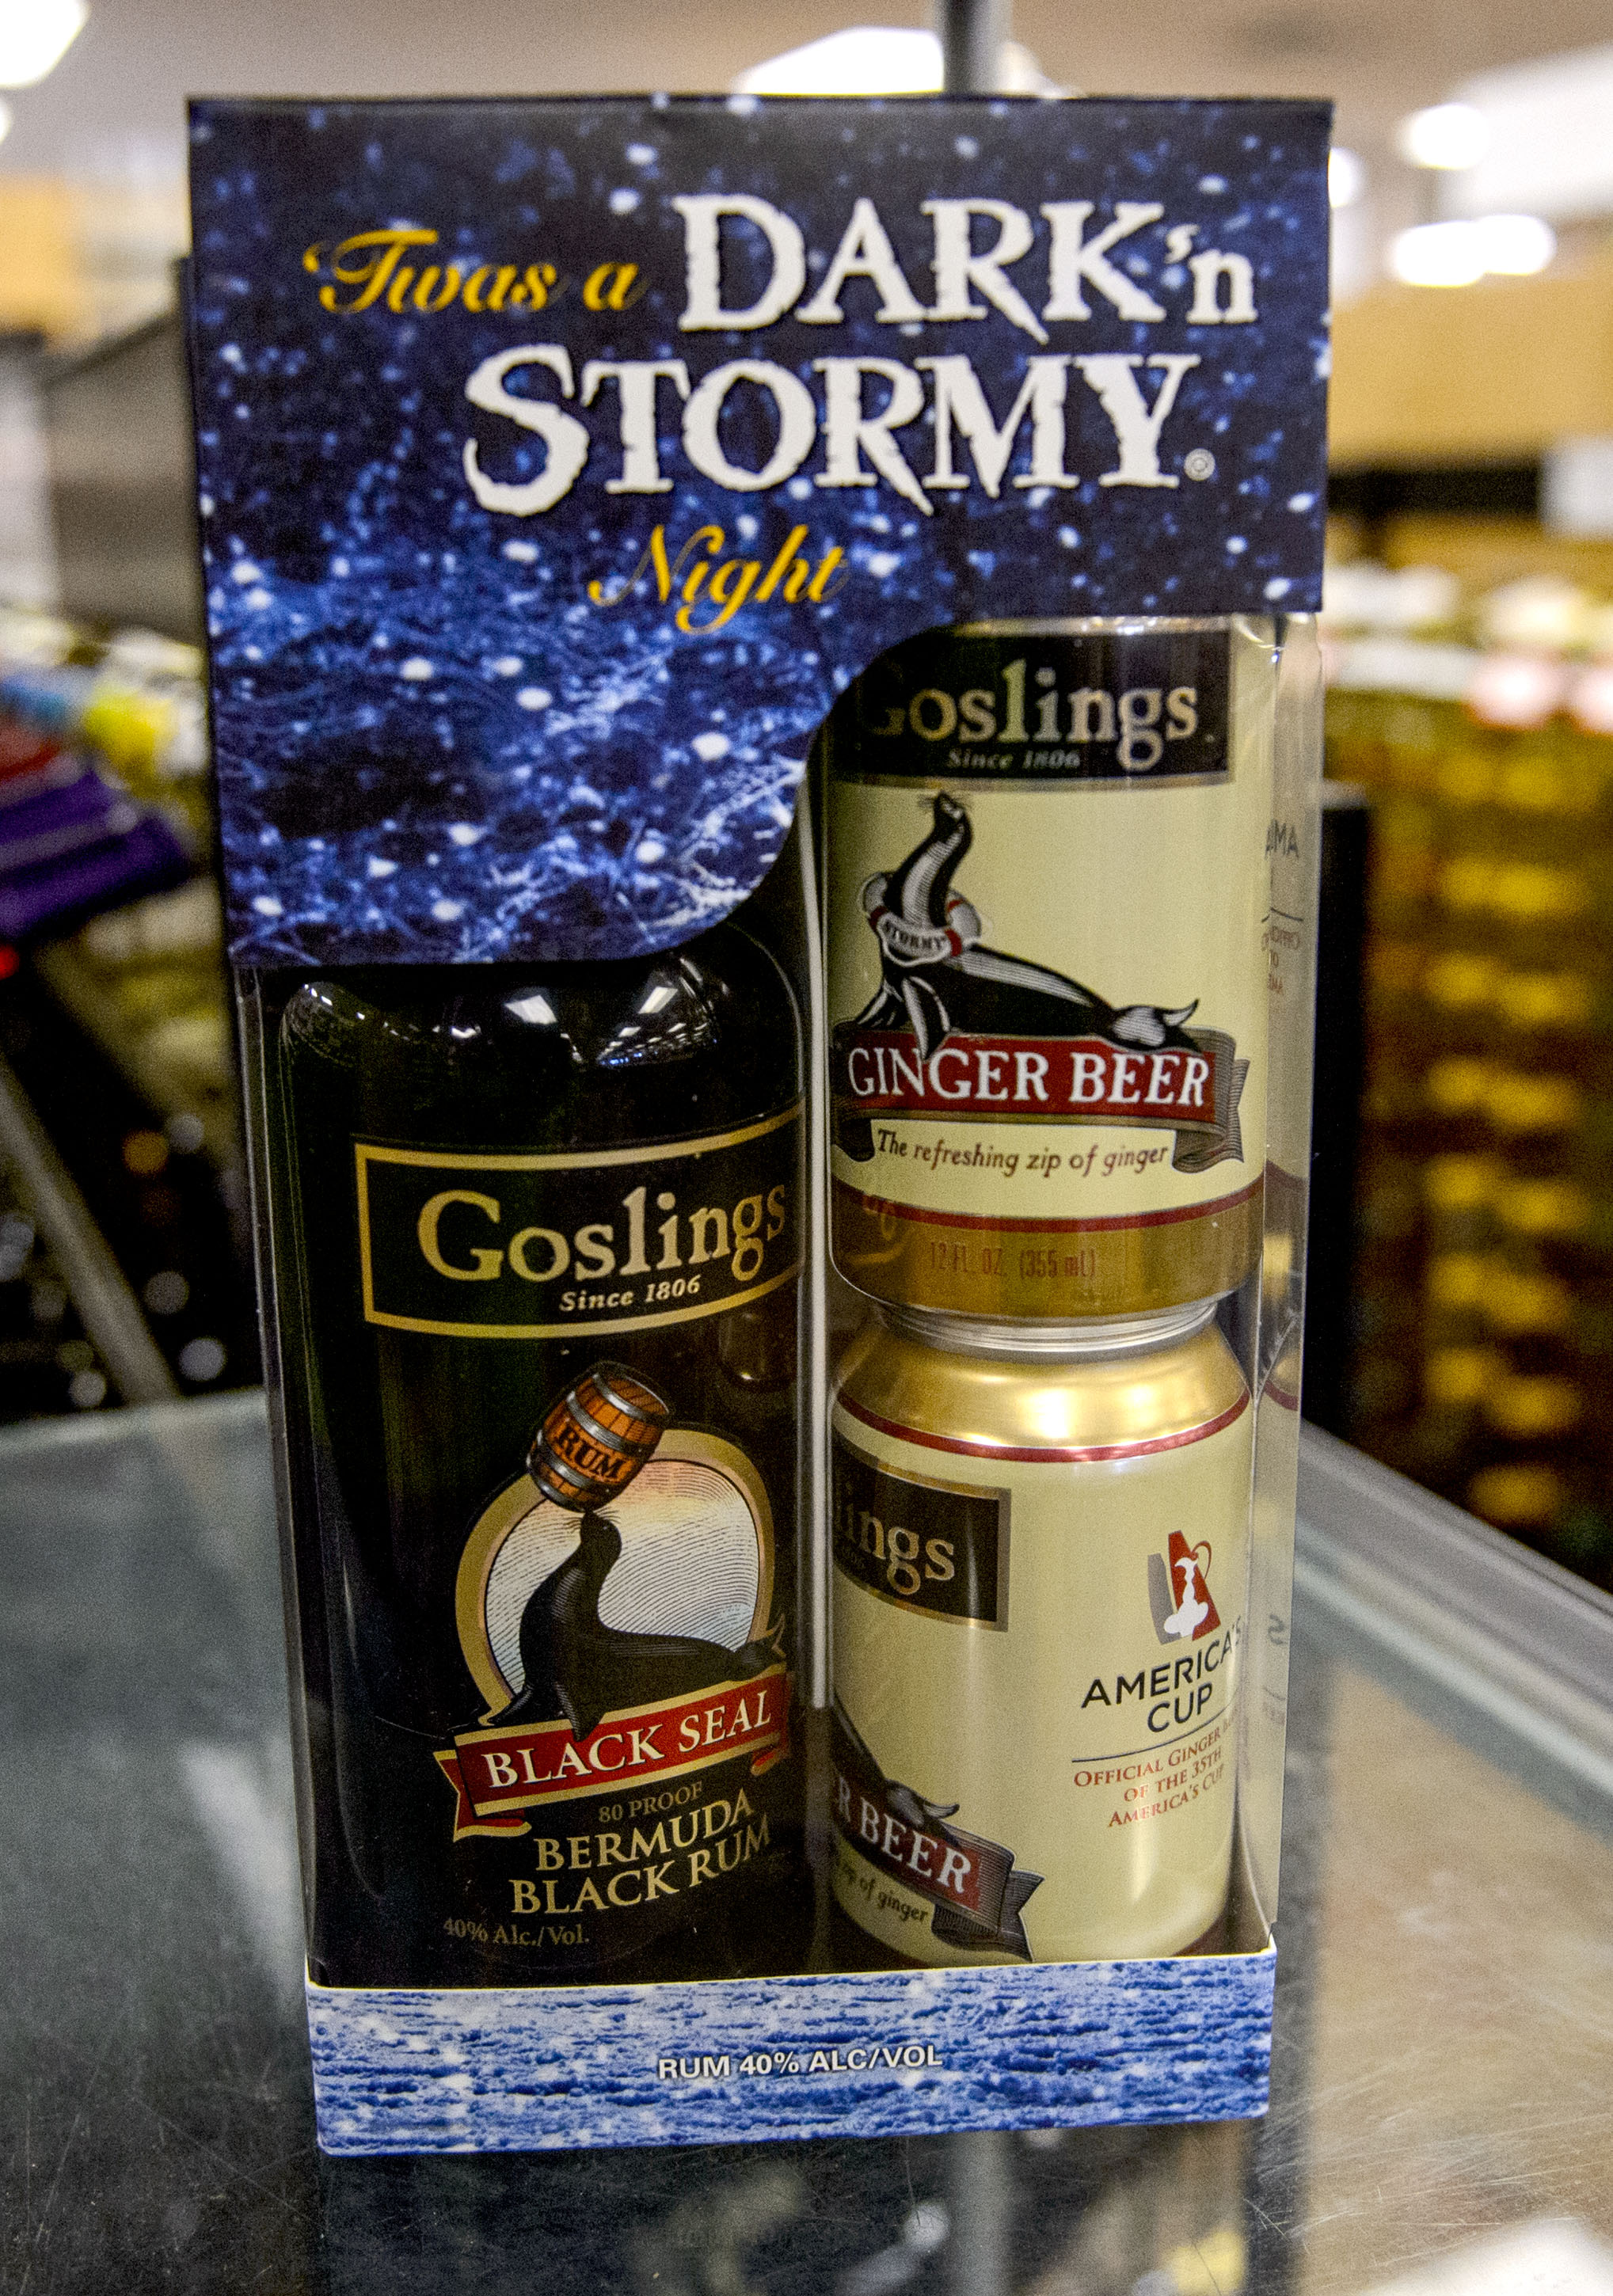 (Steve Griffin  |  The Salt Lake Tribune)  The Goslings gift set at the Utah State Liquor Store in West Valley City.